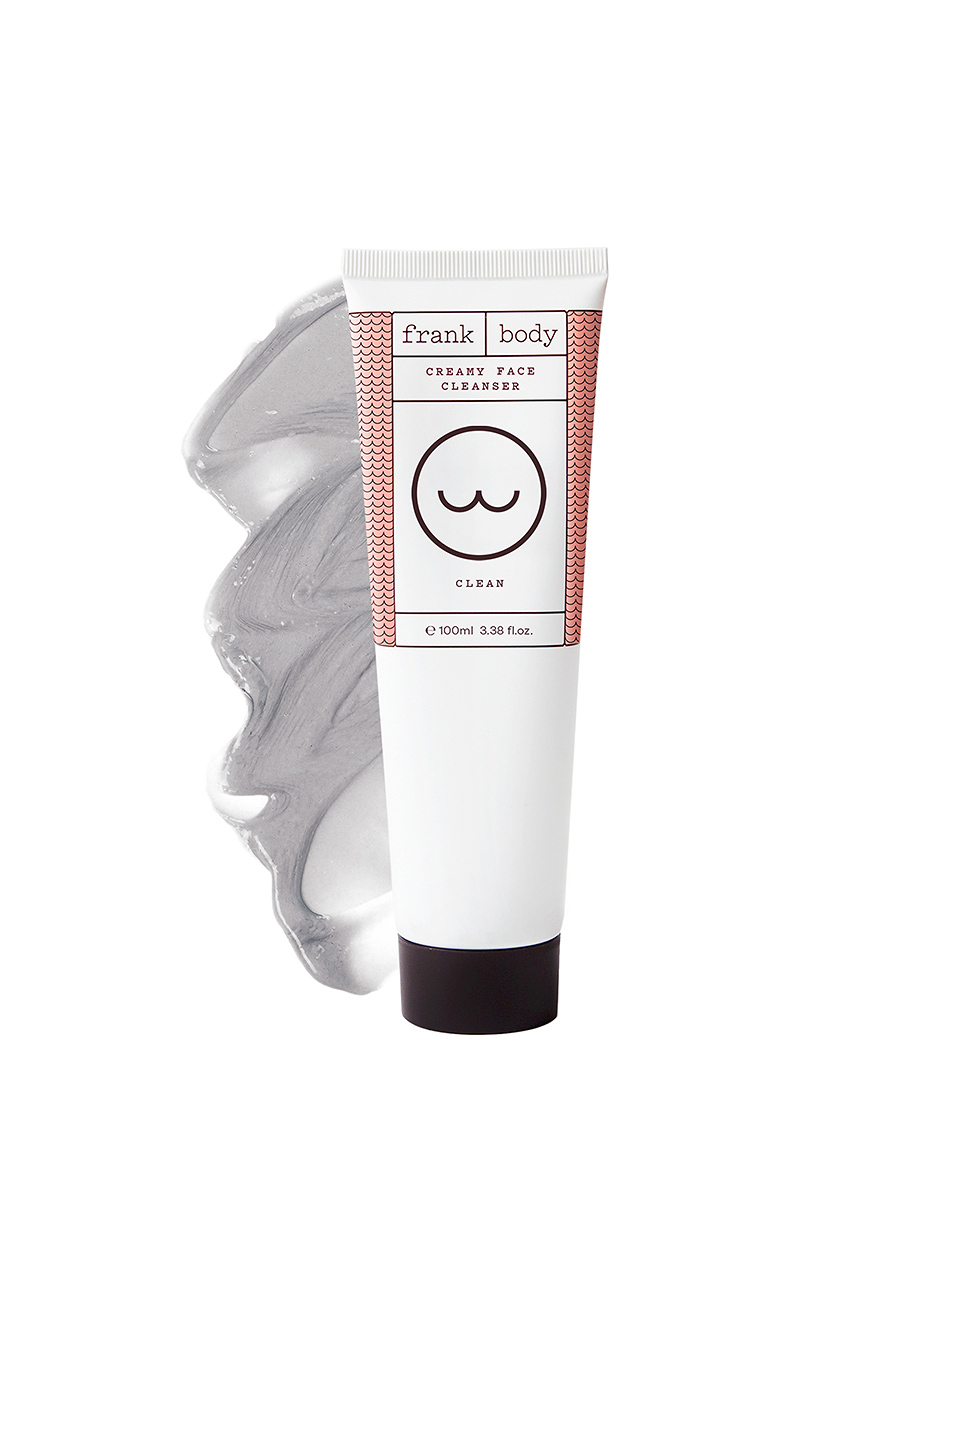 frank body creamy face cleanser review